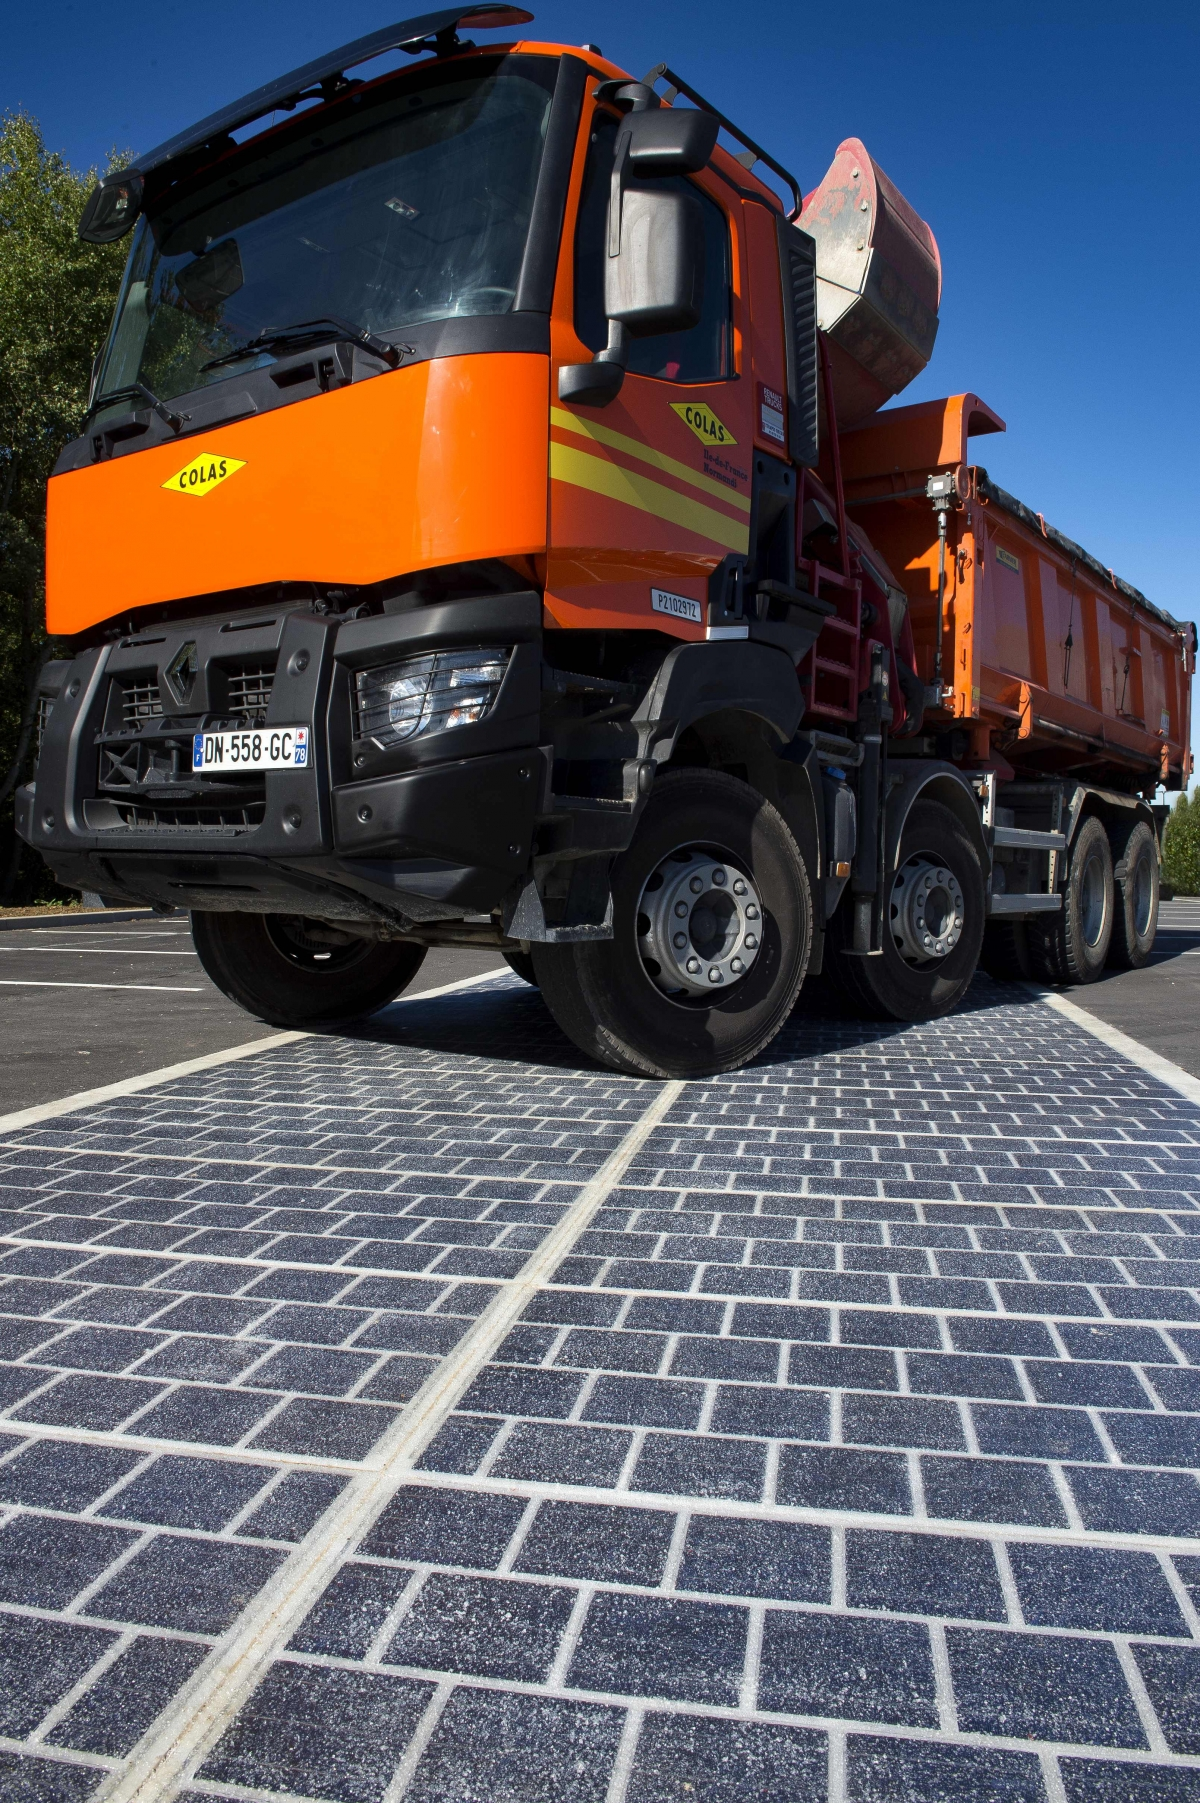 France To Roll Out Futuristic Solar Roads To Power